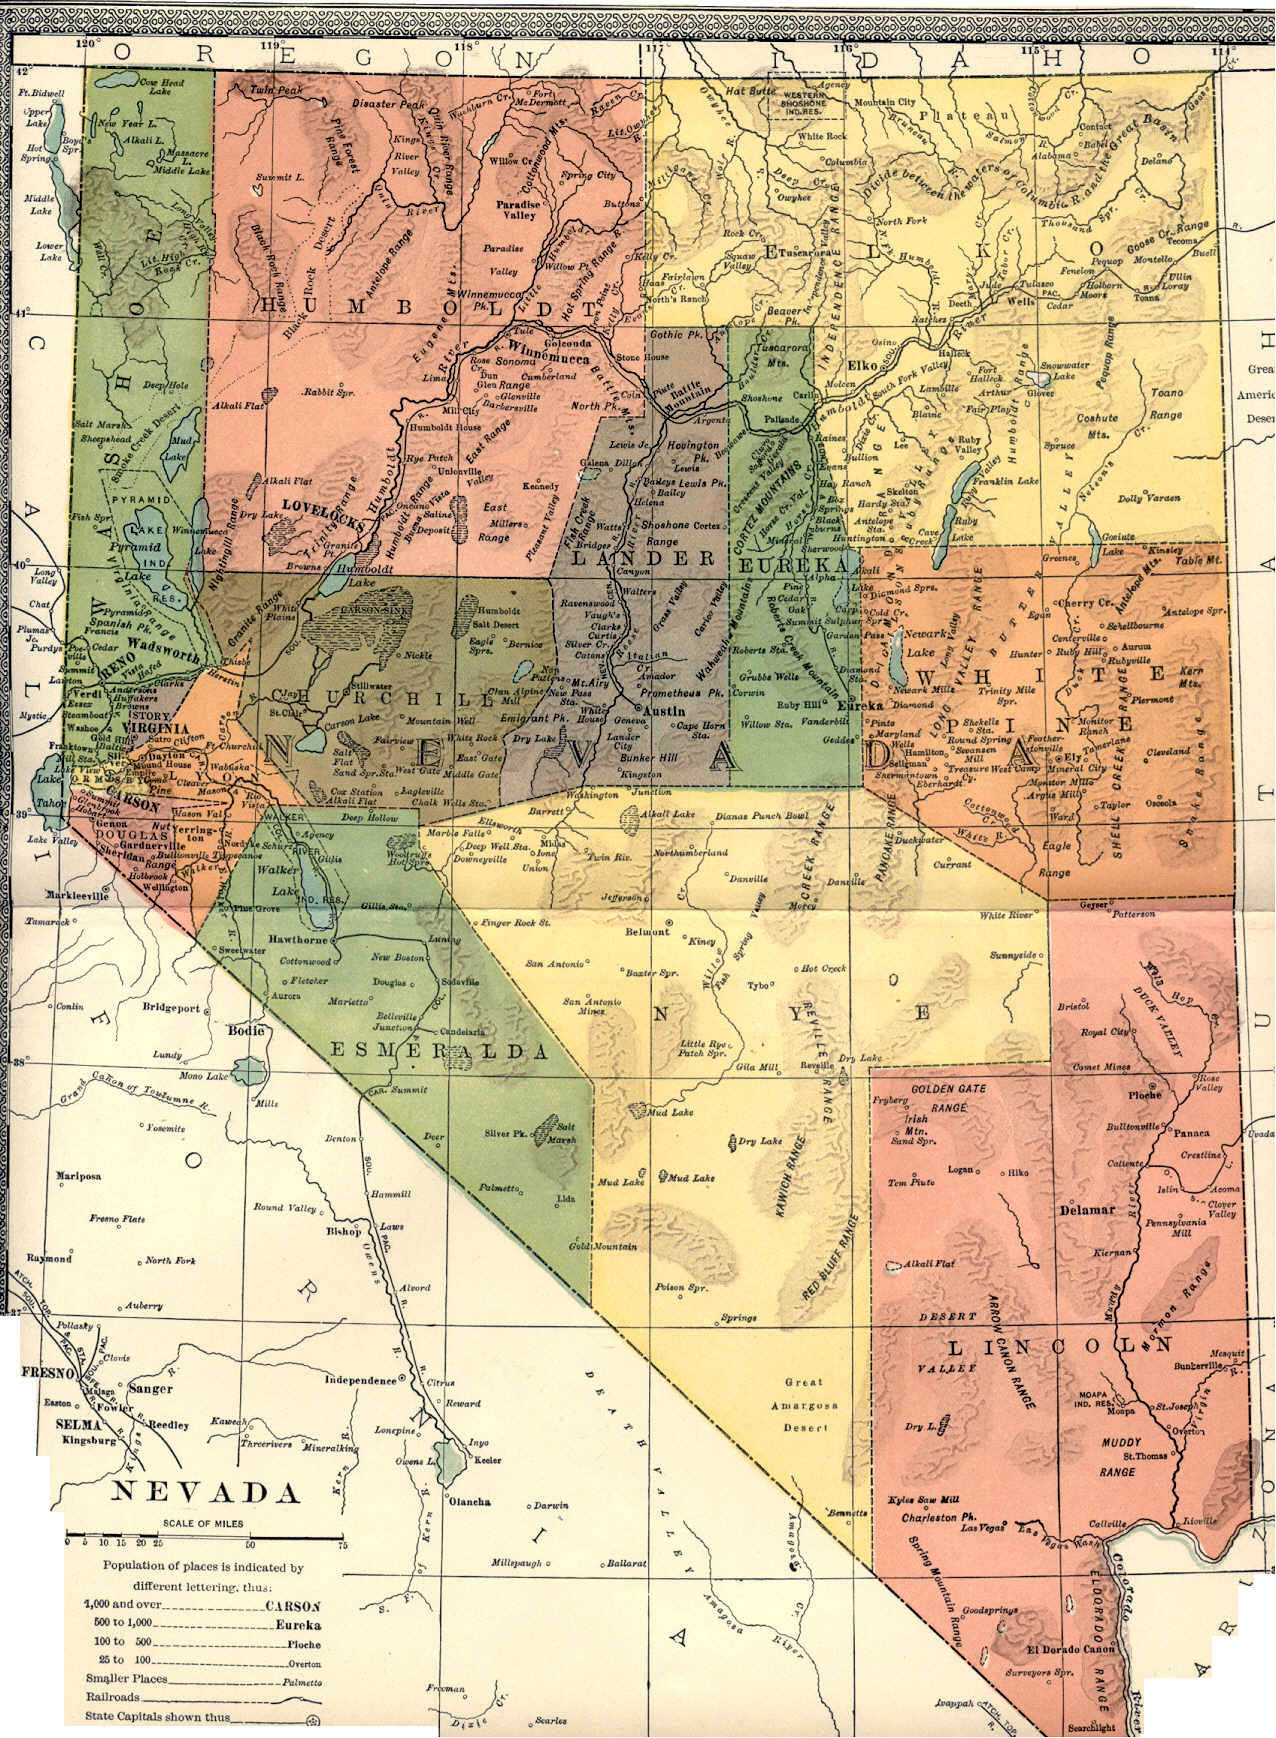 Nevada Maps. Nevada Digital Map Library. Table of Contents. United ...